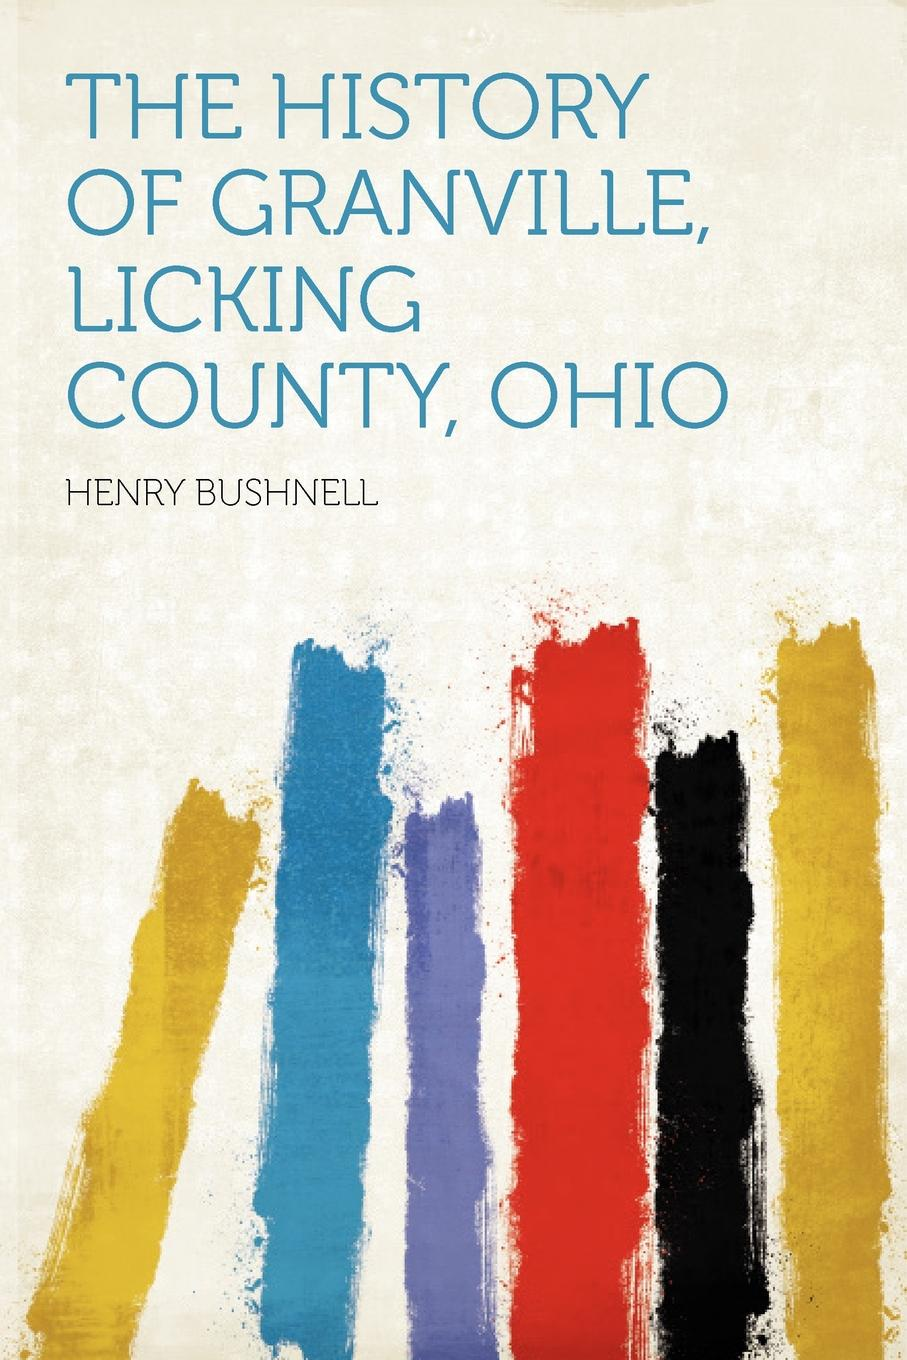 The History of Granville, Licking County, Ohio